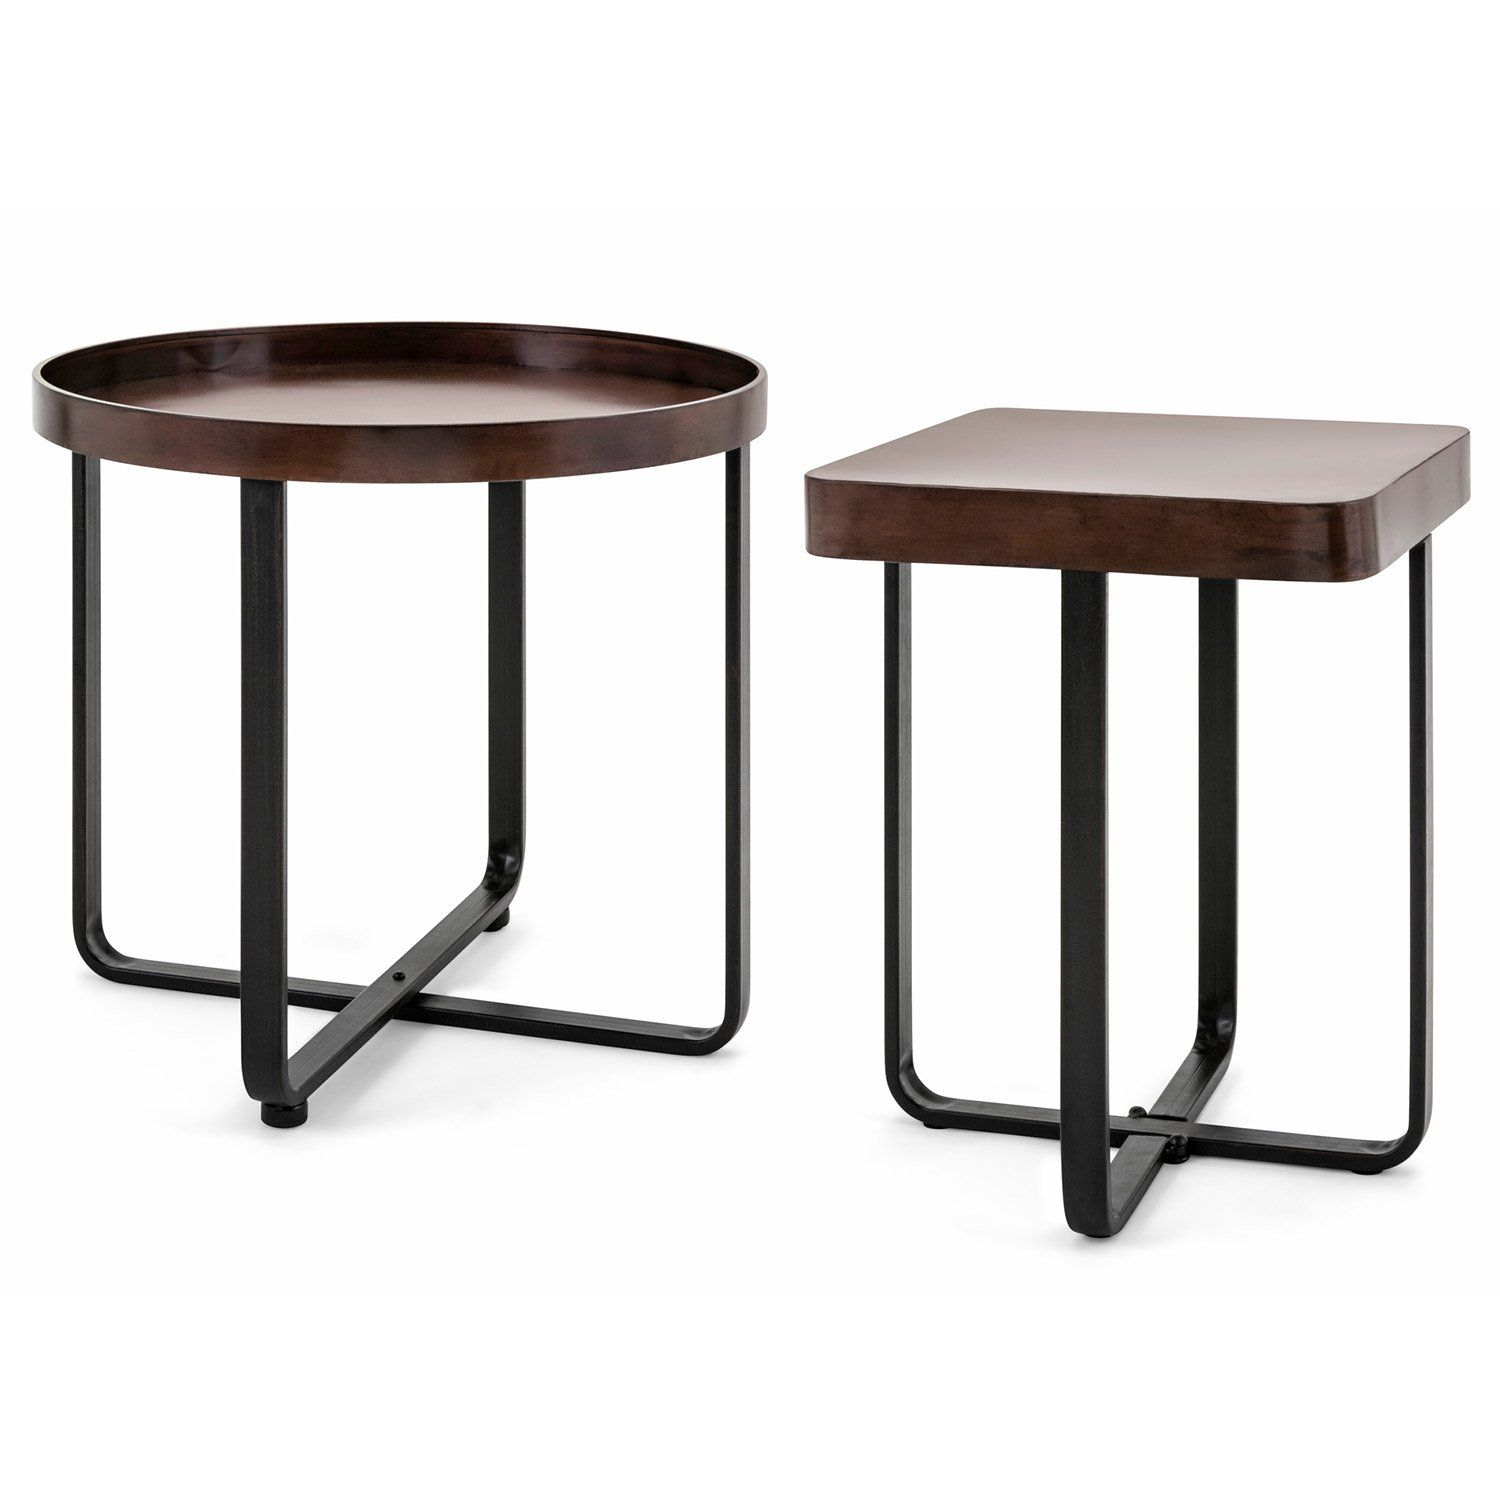 Lennon Accent Table Set Of 2 Accent Table Sets Accent Table Table [ 1500 x 1500 Pixel ]